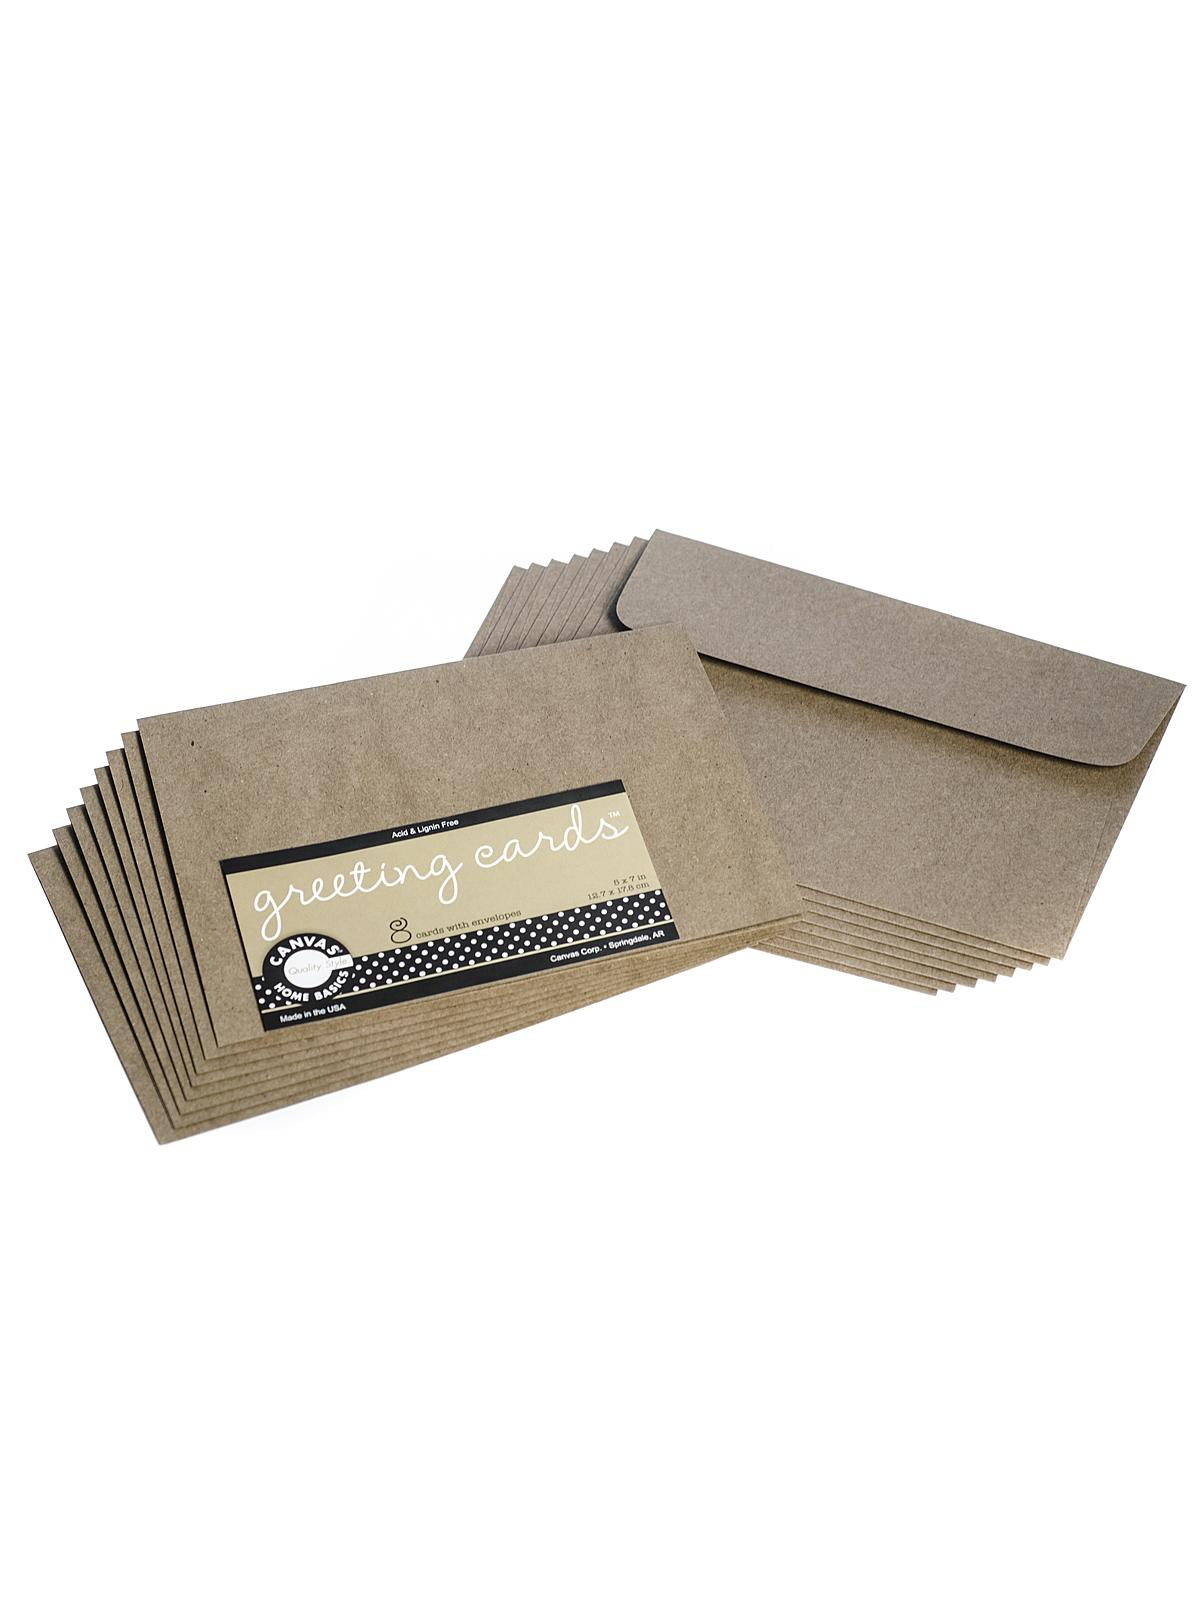 Packaged Cards And Envelopes Greeting Cards With Envelopes Kraft 5 In. X 7 In. Pack Of 8